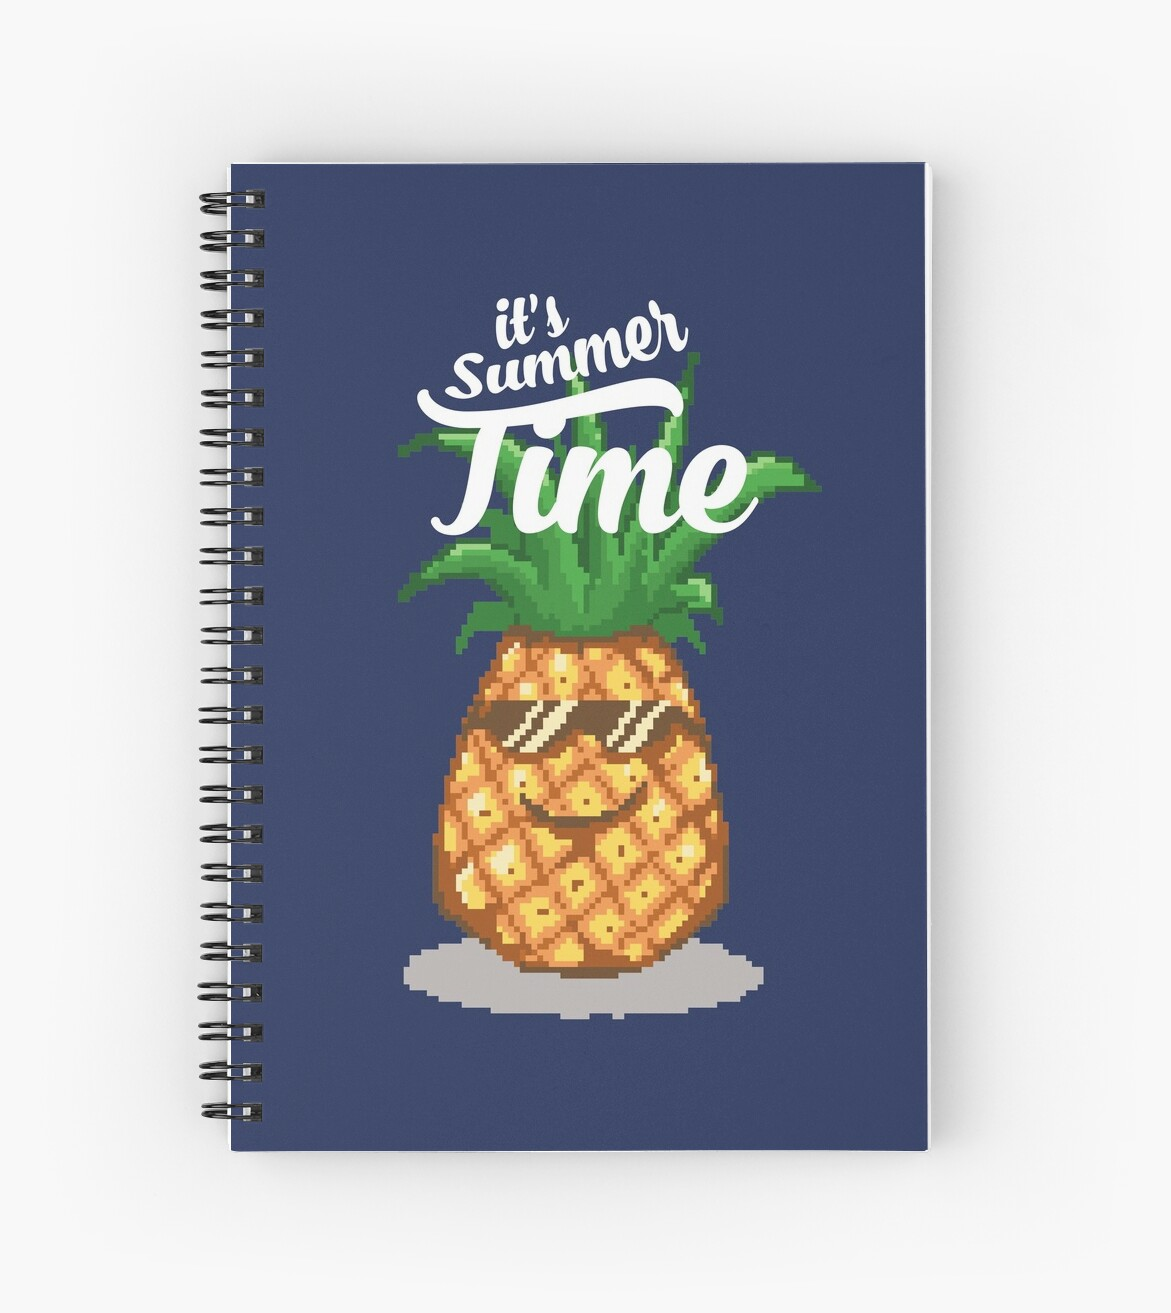 Summer Time Pineapple Pixel Art Spiral Notebook By Rebus 28